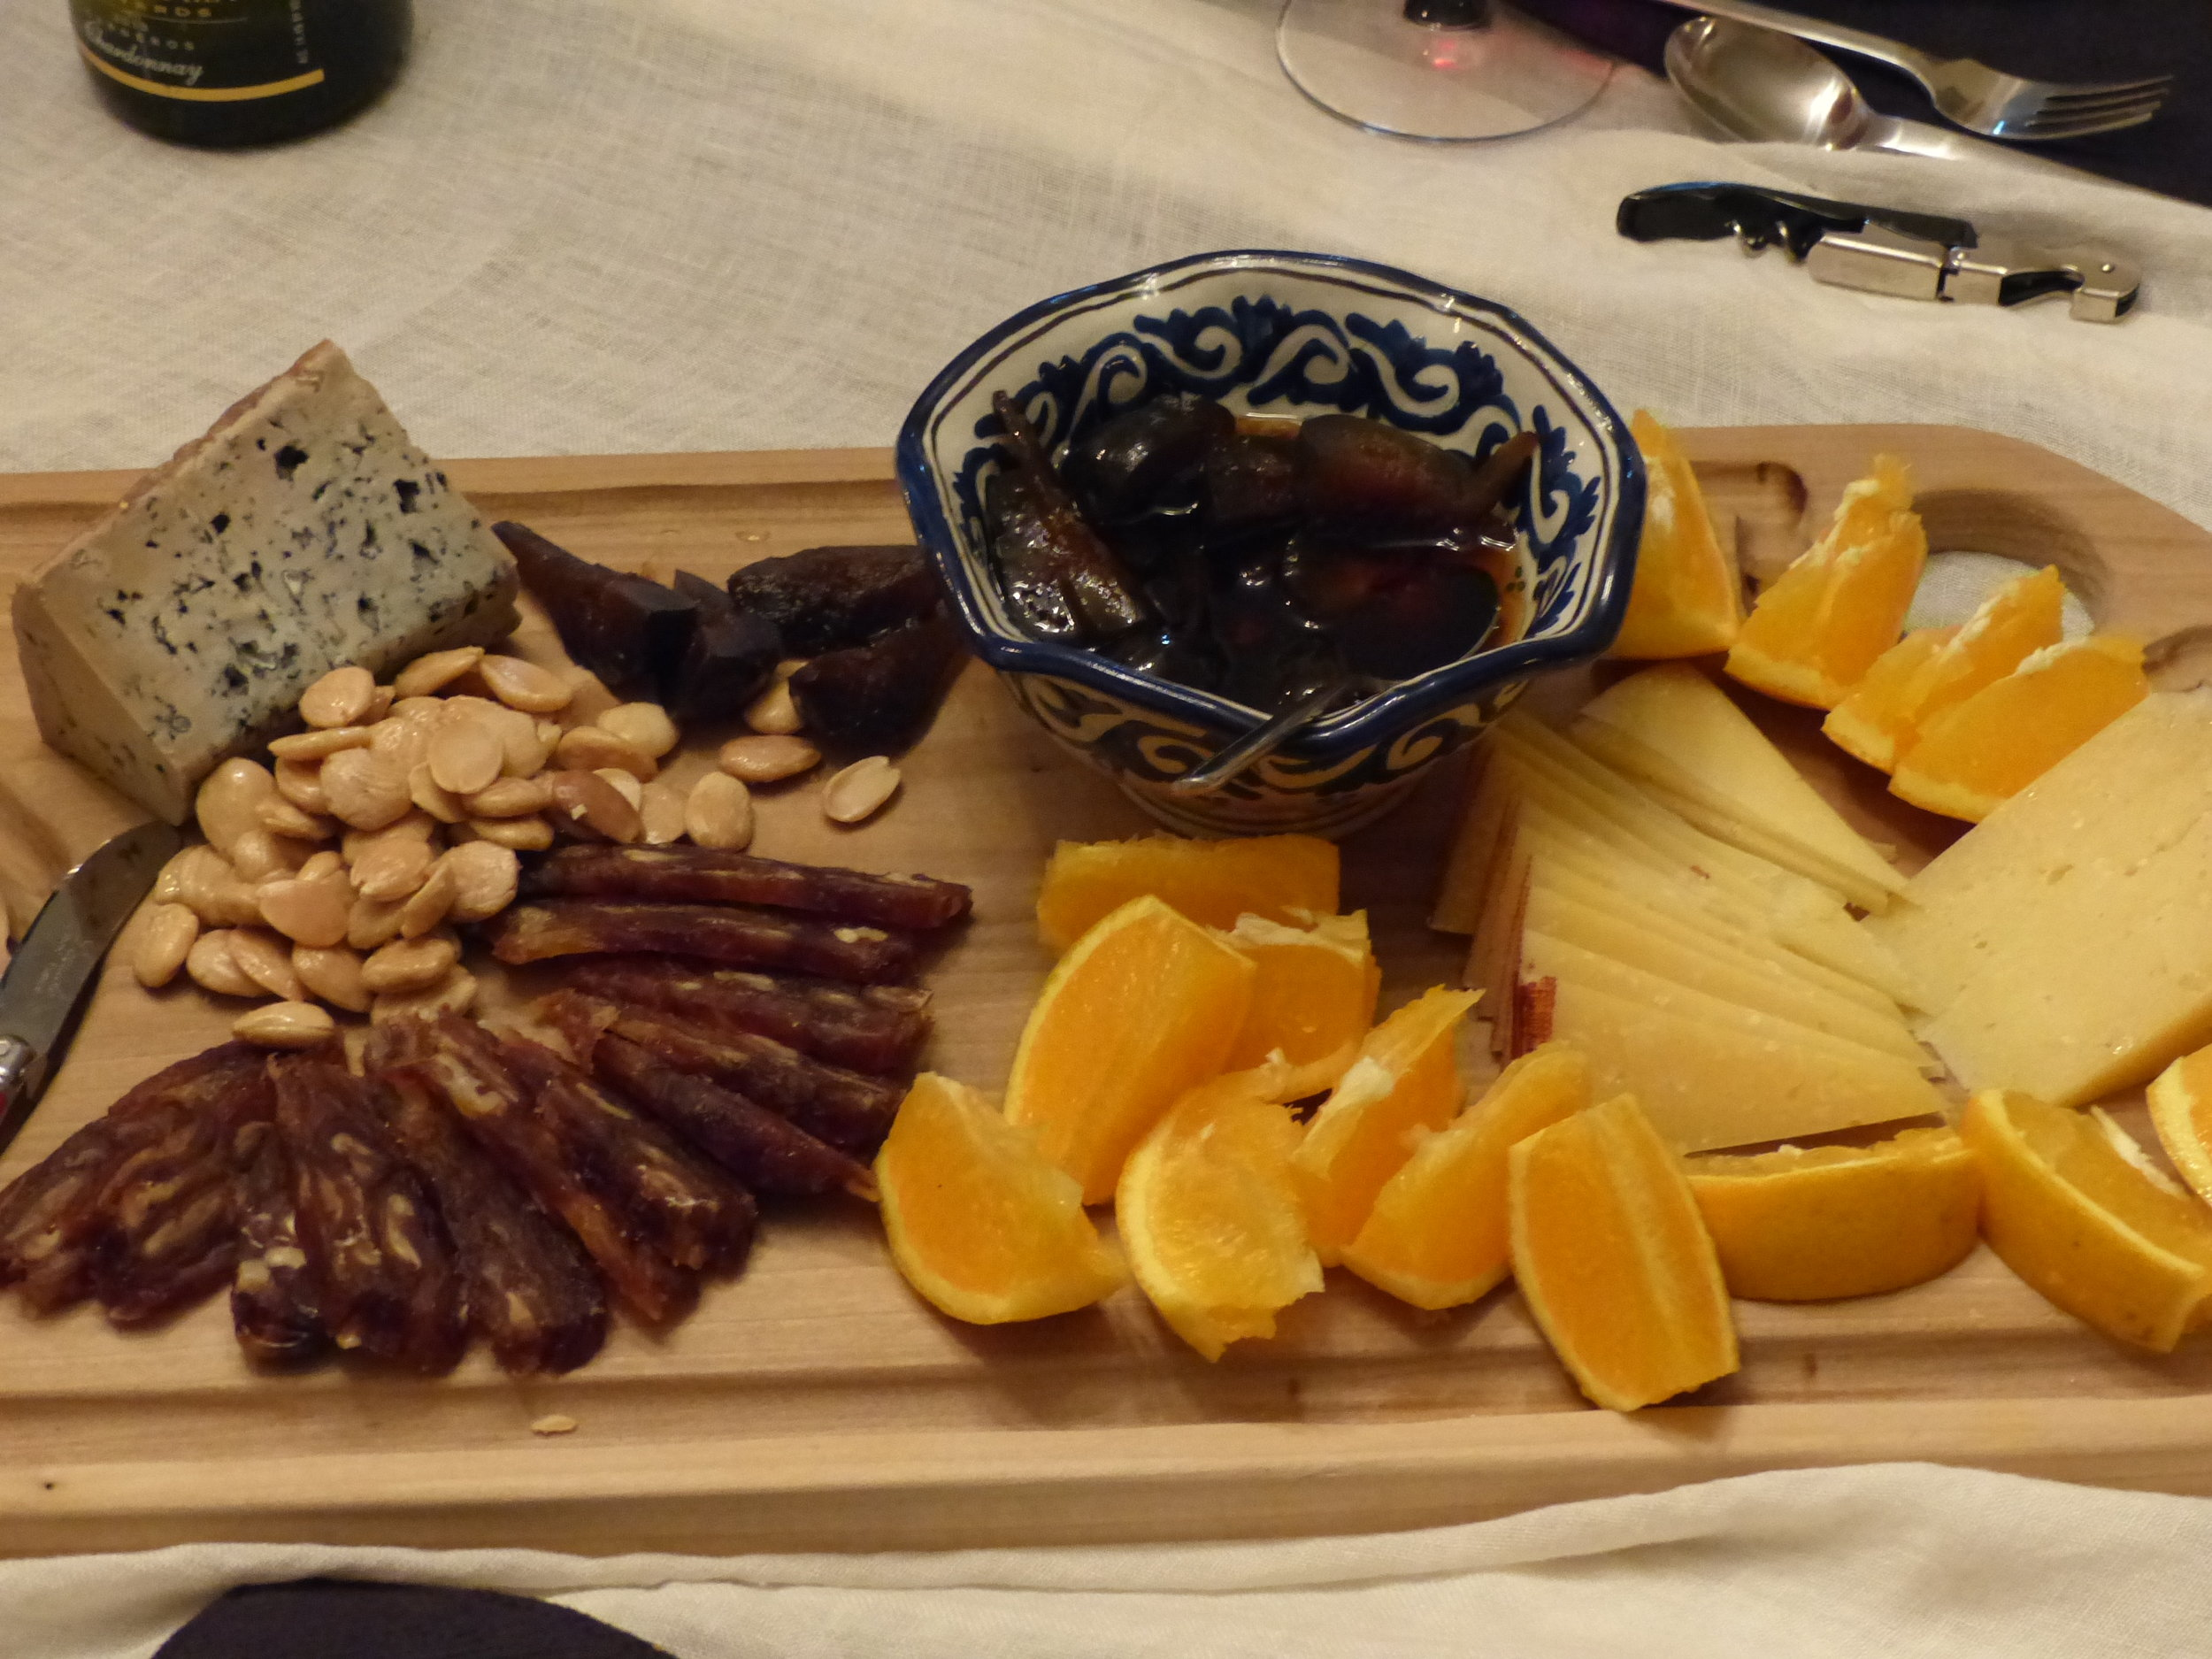 Blue cheese (such as  Cabrales ,  Valdeon,  Stilton or Gorgonzola). Add nuts, date loaf, figs in syrup, oranges.